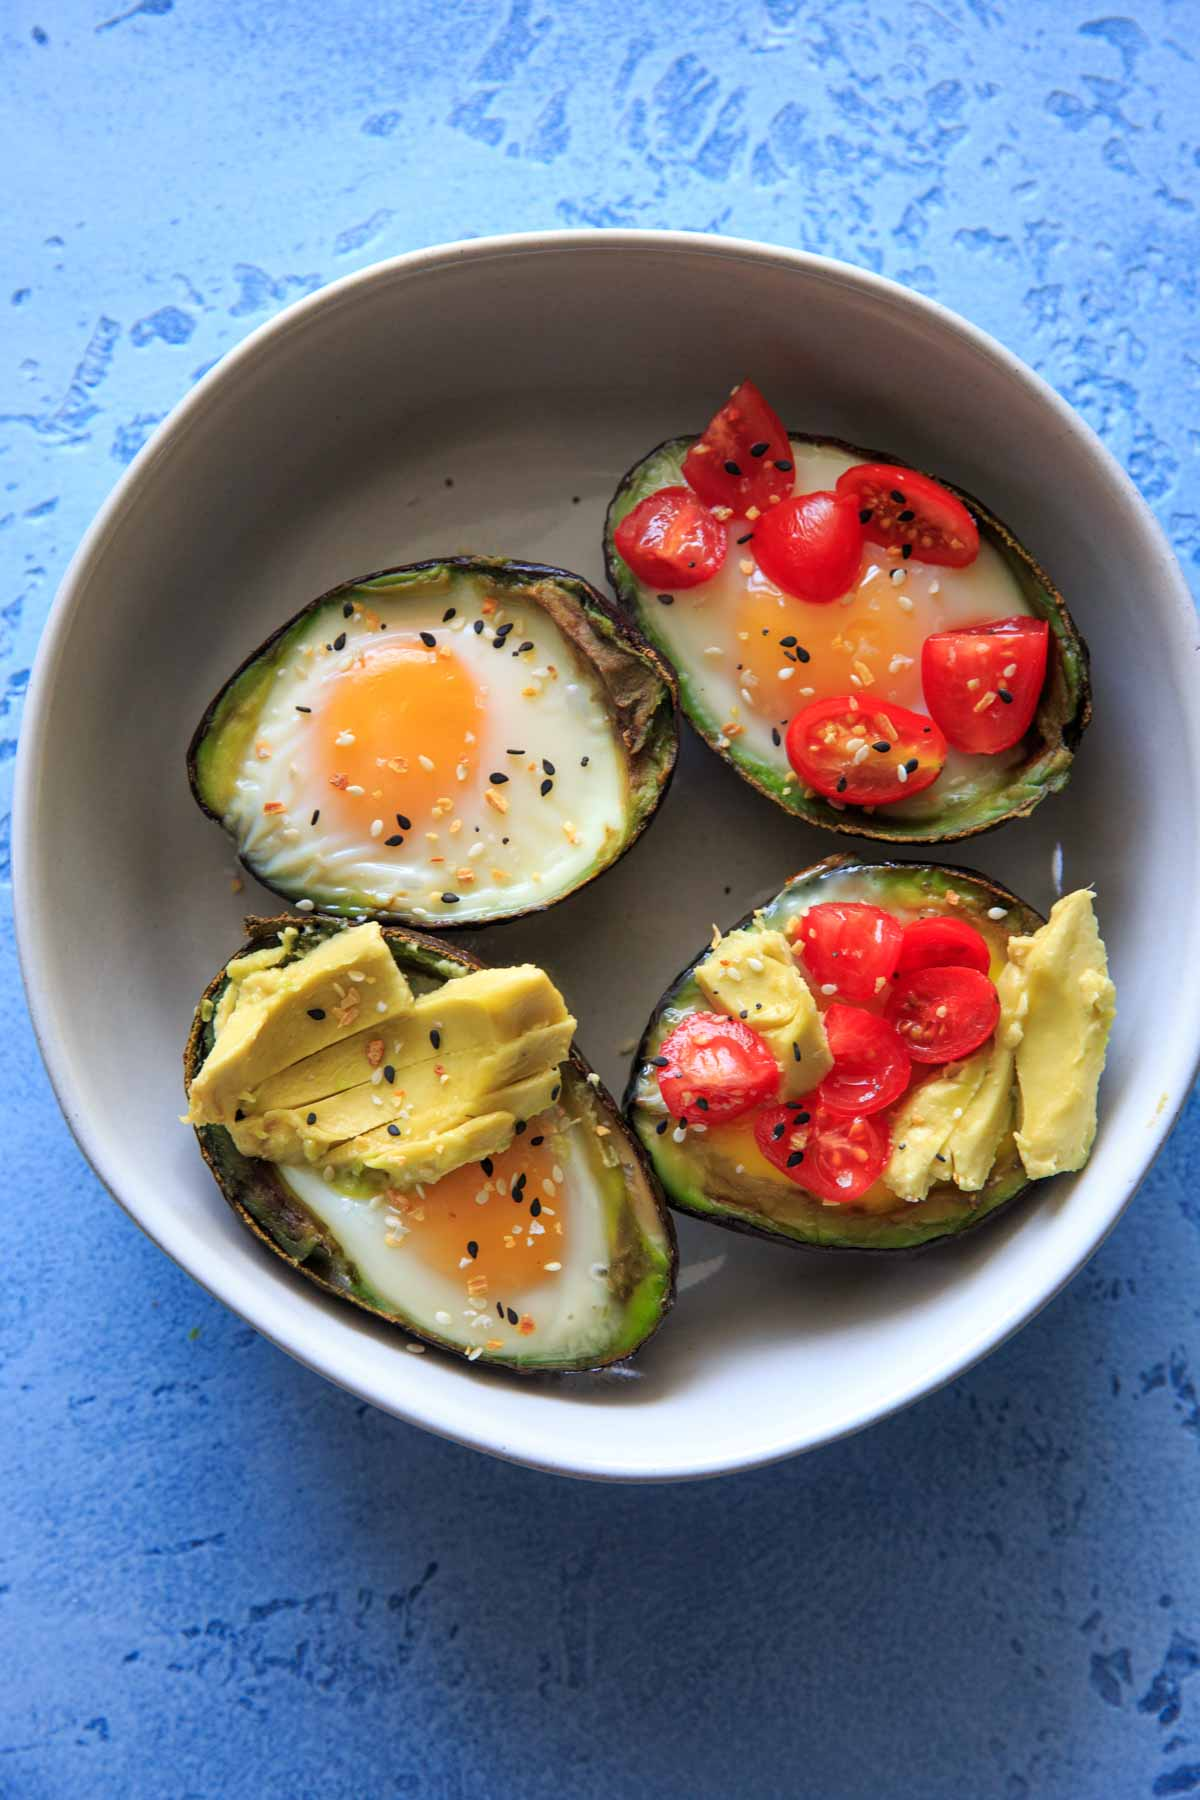 "Baked Egg in Avocado (Avocado ""Nests"") are a fun way to have a balanced snack or breakfast, or a cute mini serving for a brunch! Customizable with toppings and will last a day or two in the fridge, so you can bake ahead if needed! Low-carb, protein, fiber and healthy fats."